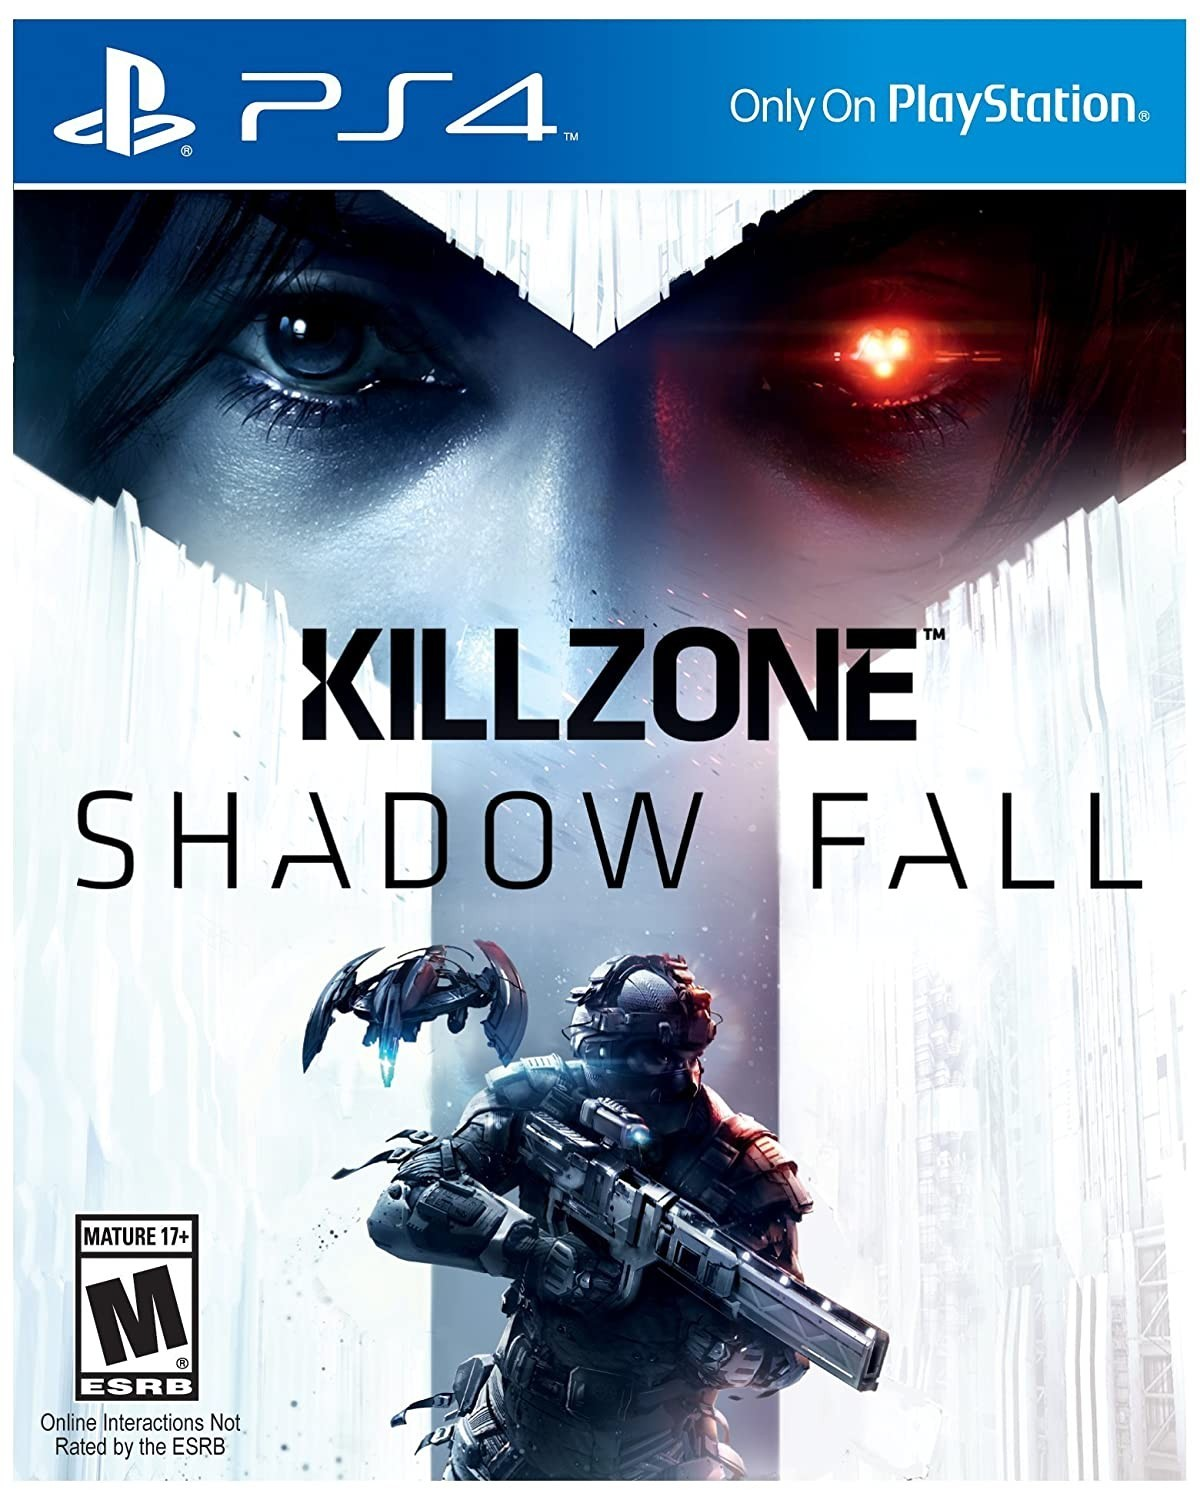 Killzone: В плену сумрака | Killzone: Shadow Fall (англ) б/у PS4